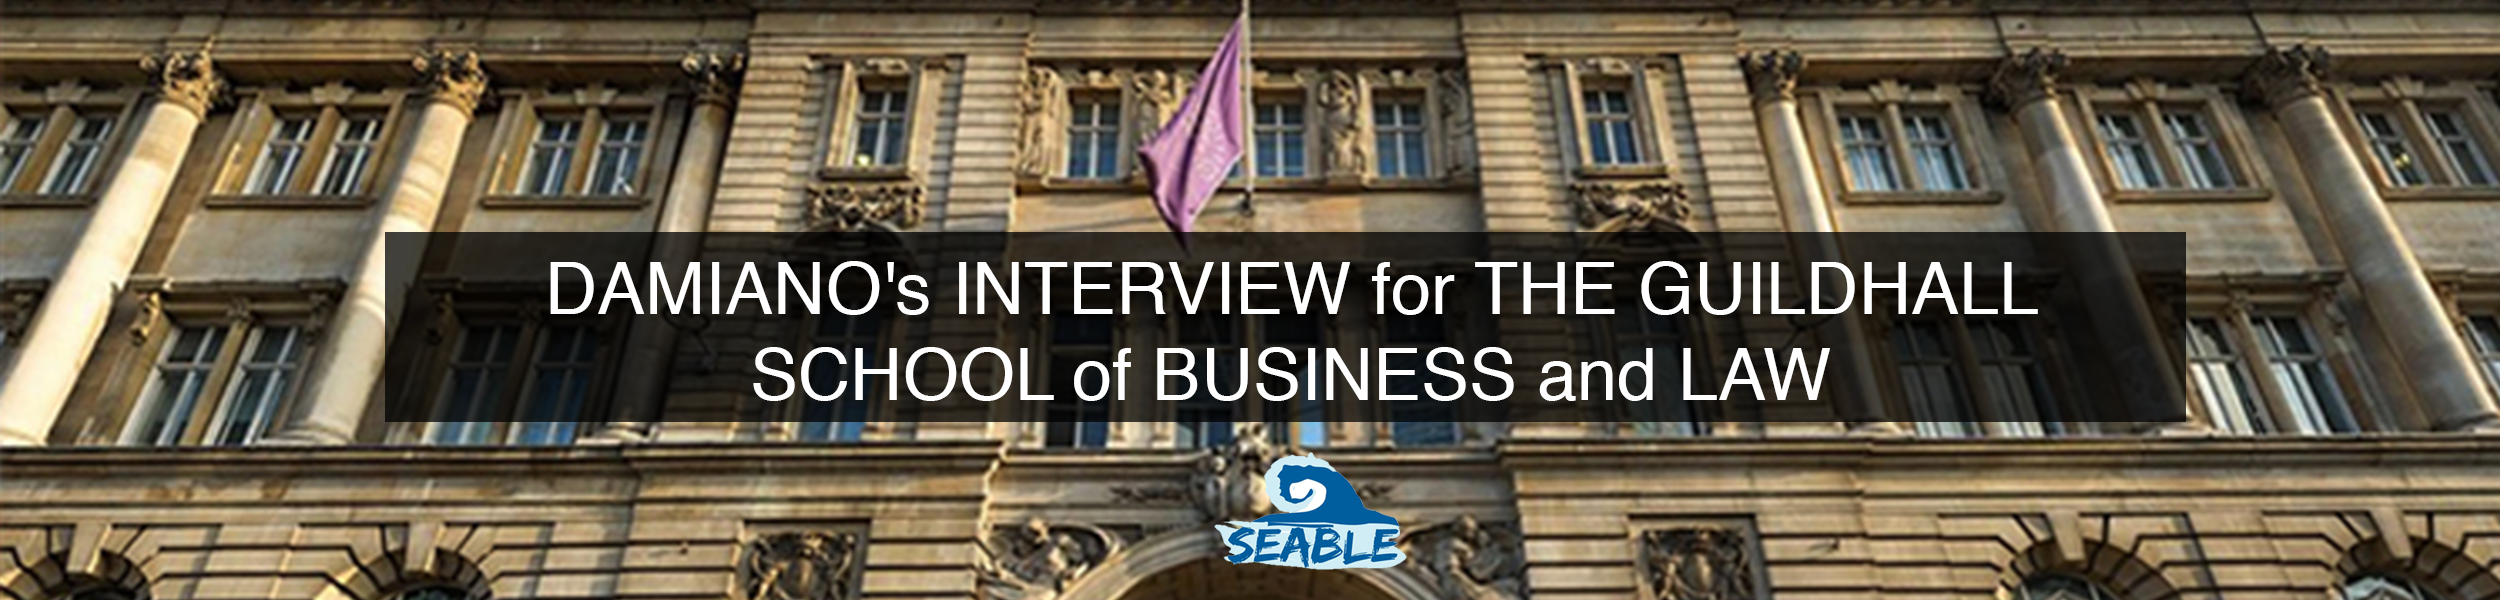 DAMIANO's INTERVIEW for THE GUILDHALL SCHOOL of BUSINESS and LAW